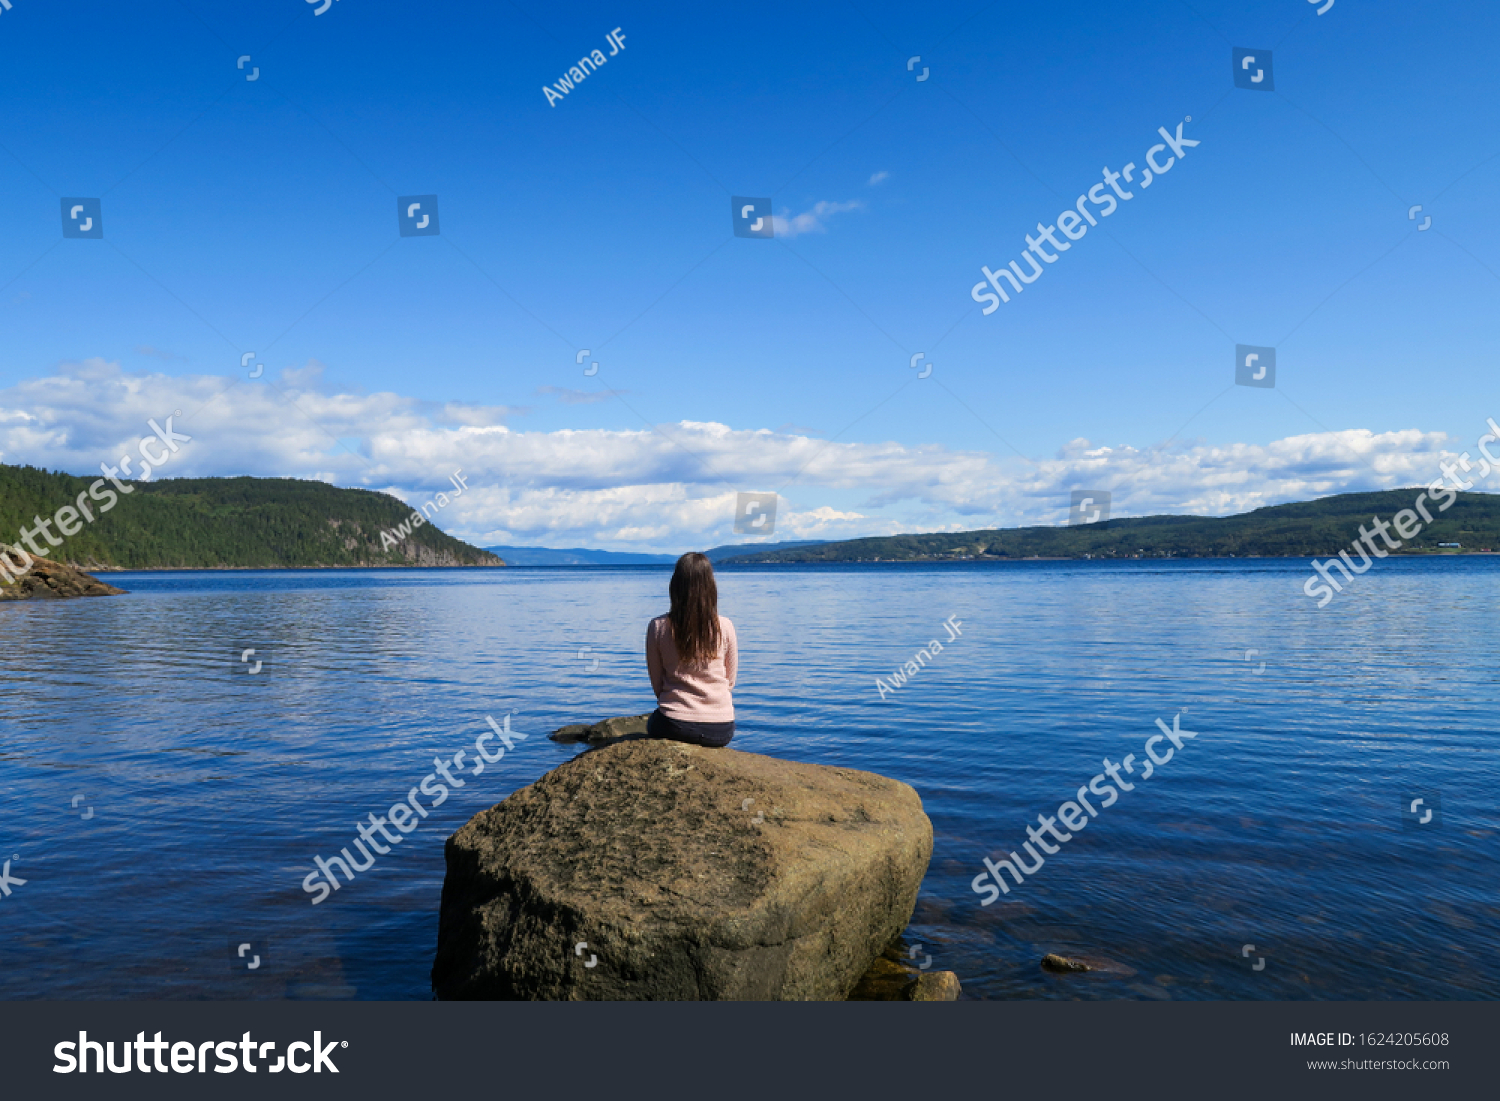 Beautiful young woman sitting in peace on a rock contemplating the Saguenay fjord